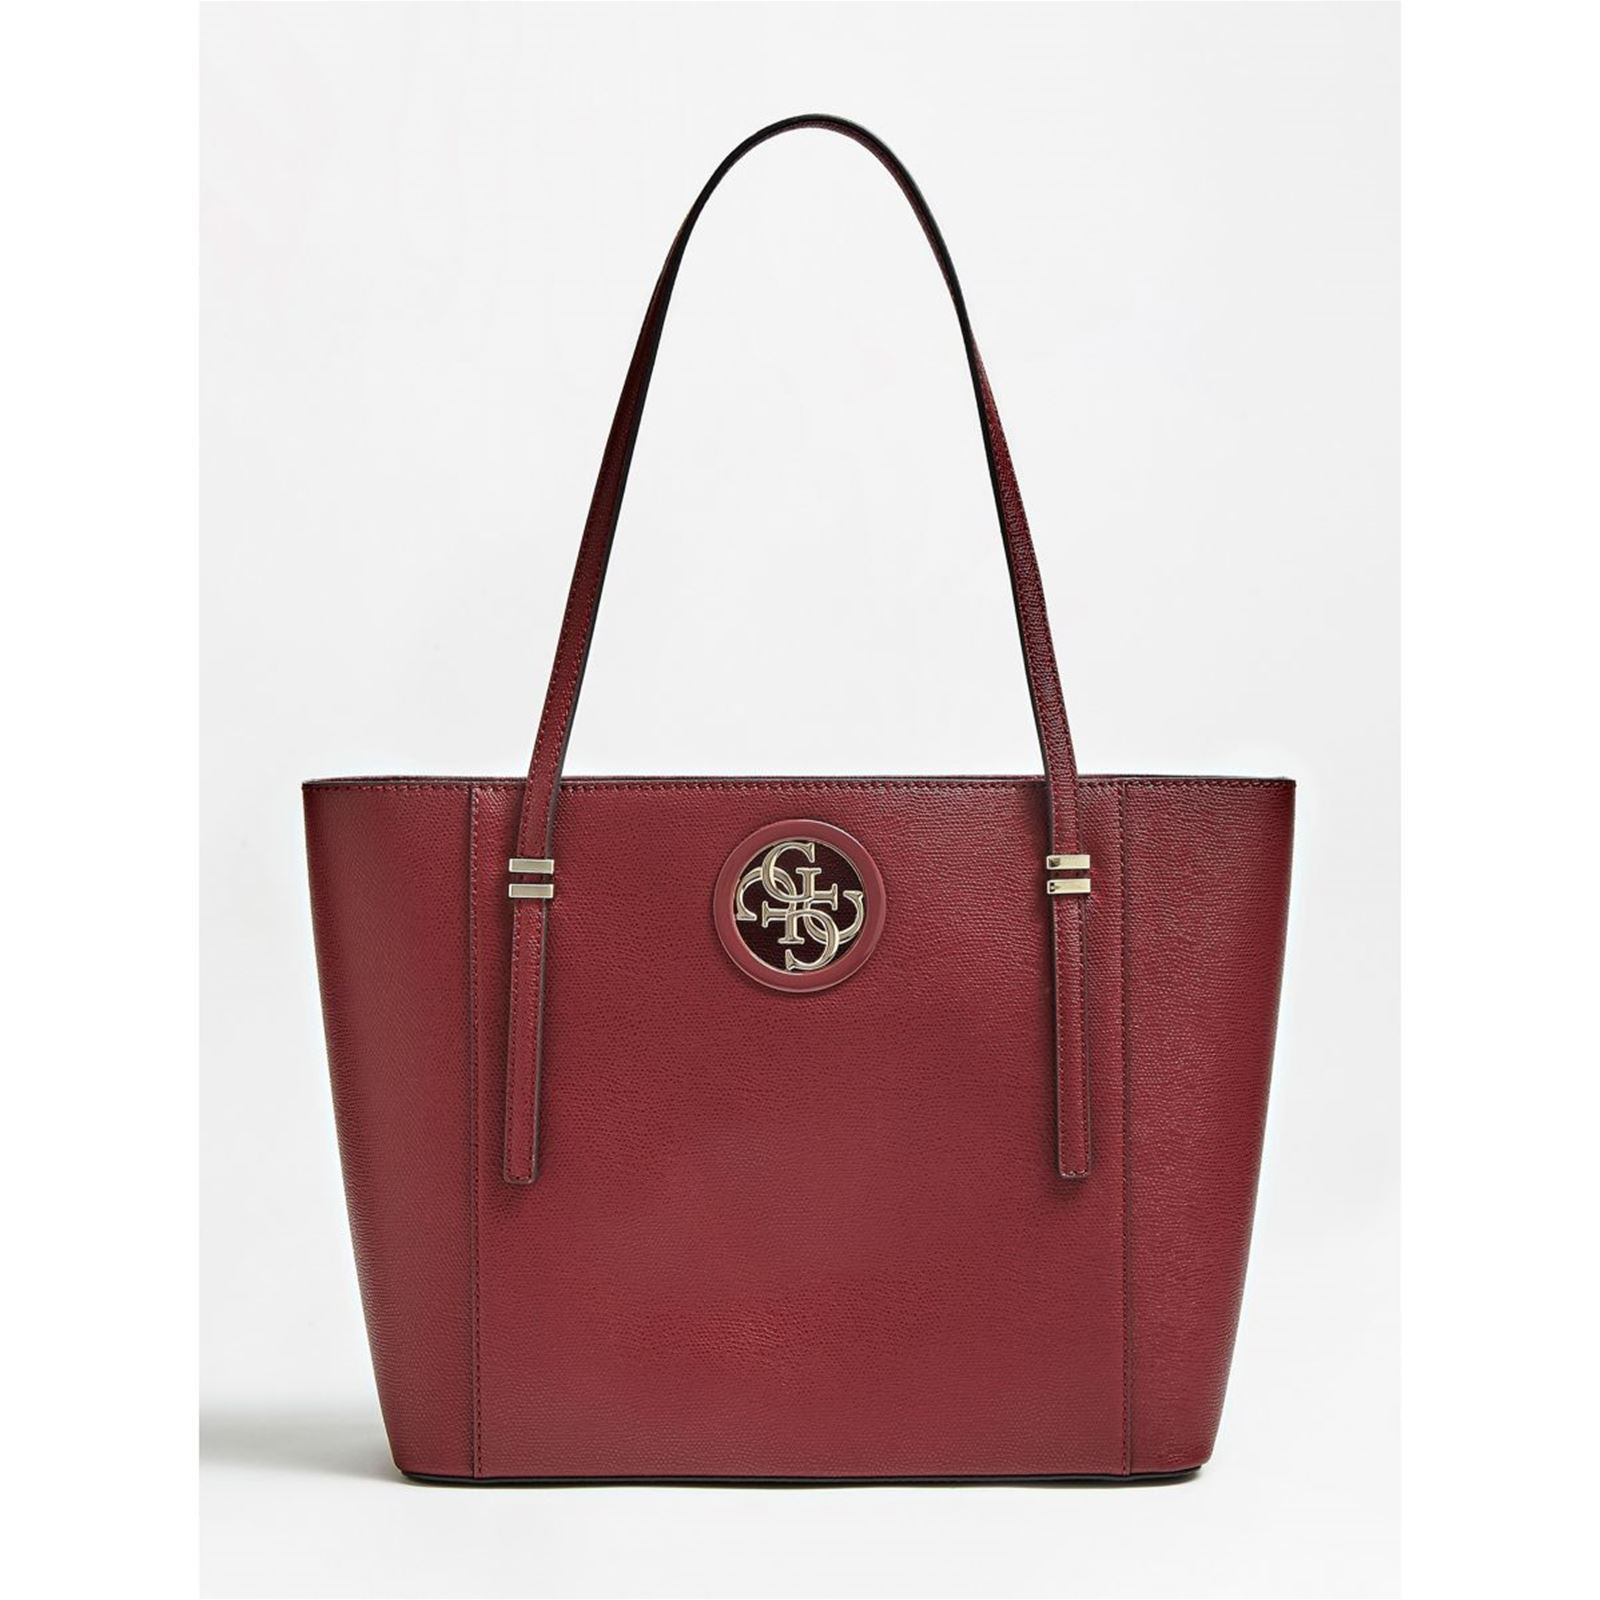 combien coute sac guess shoping cabas marrin